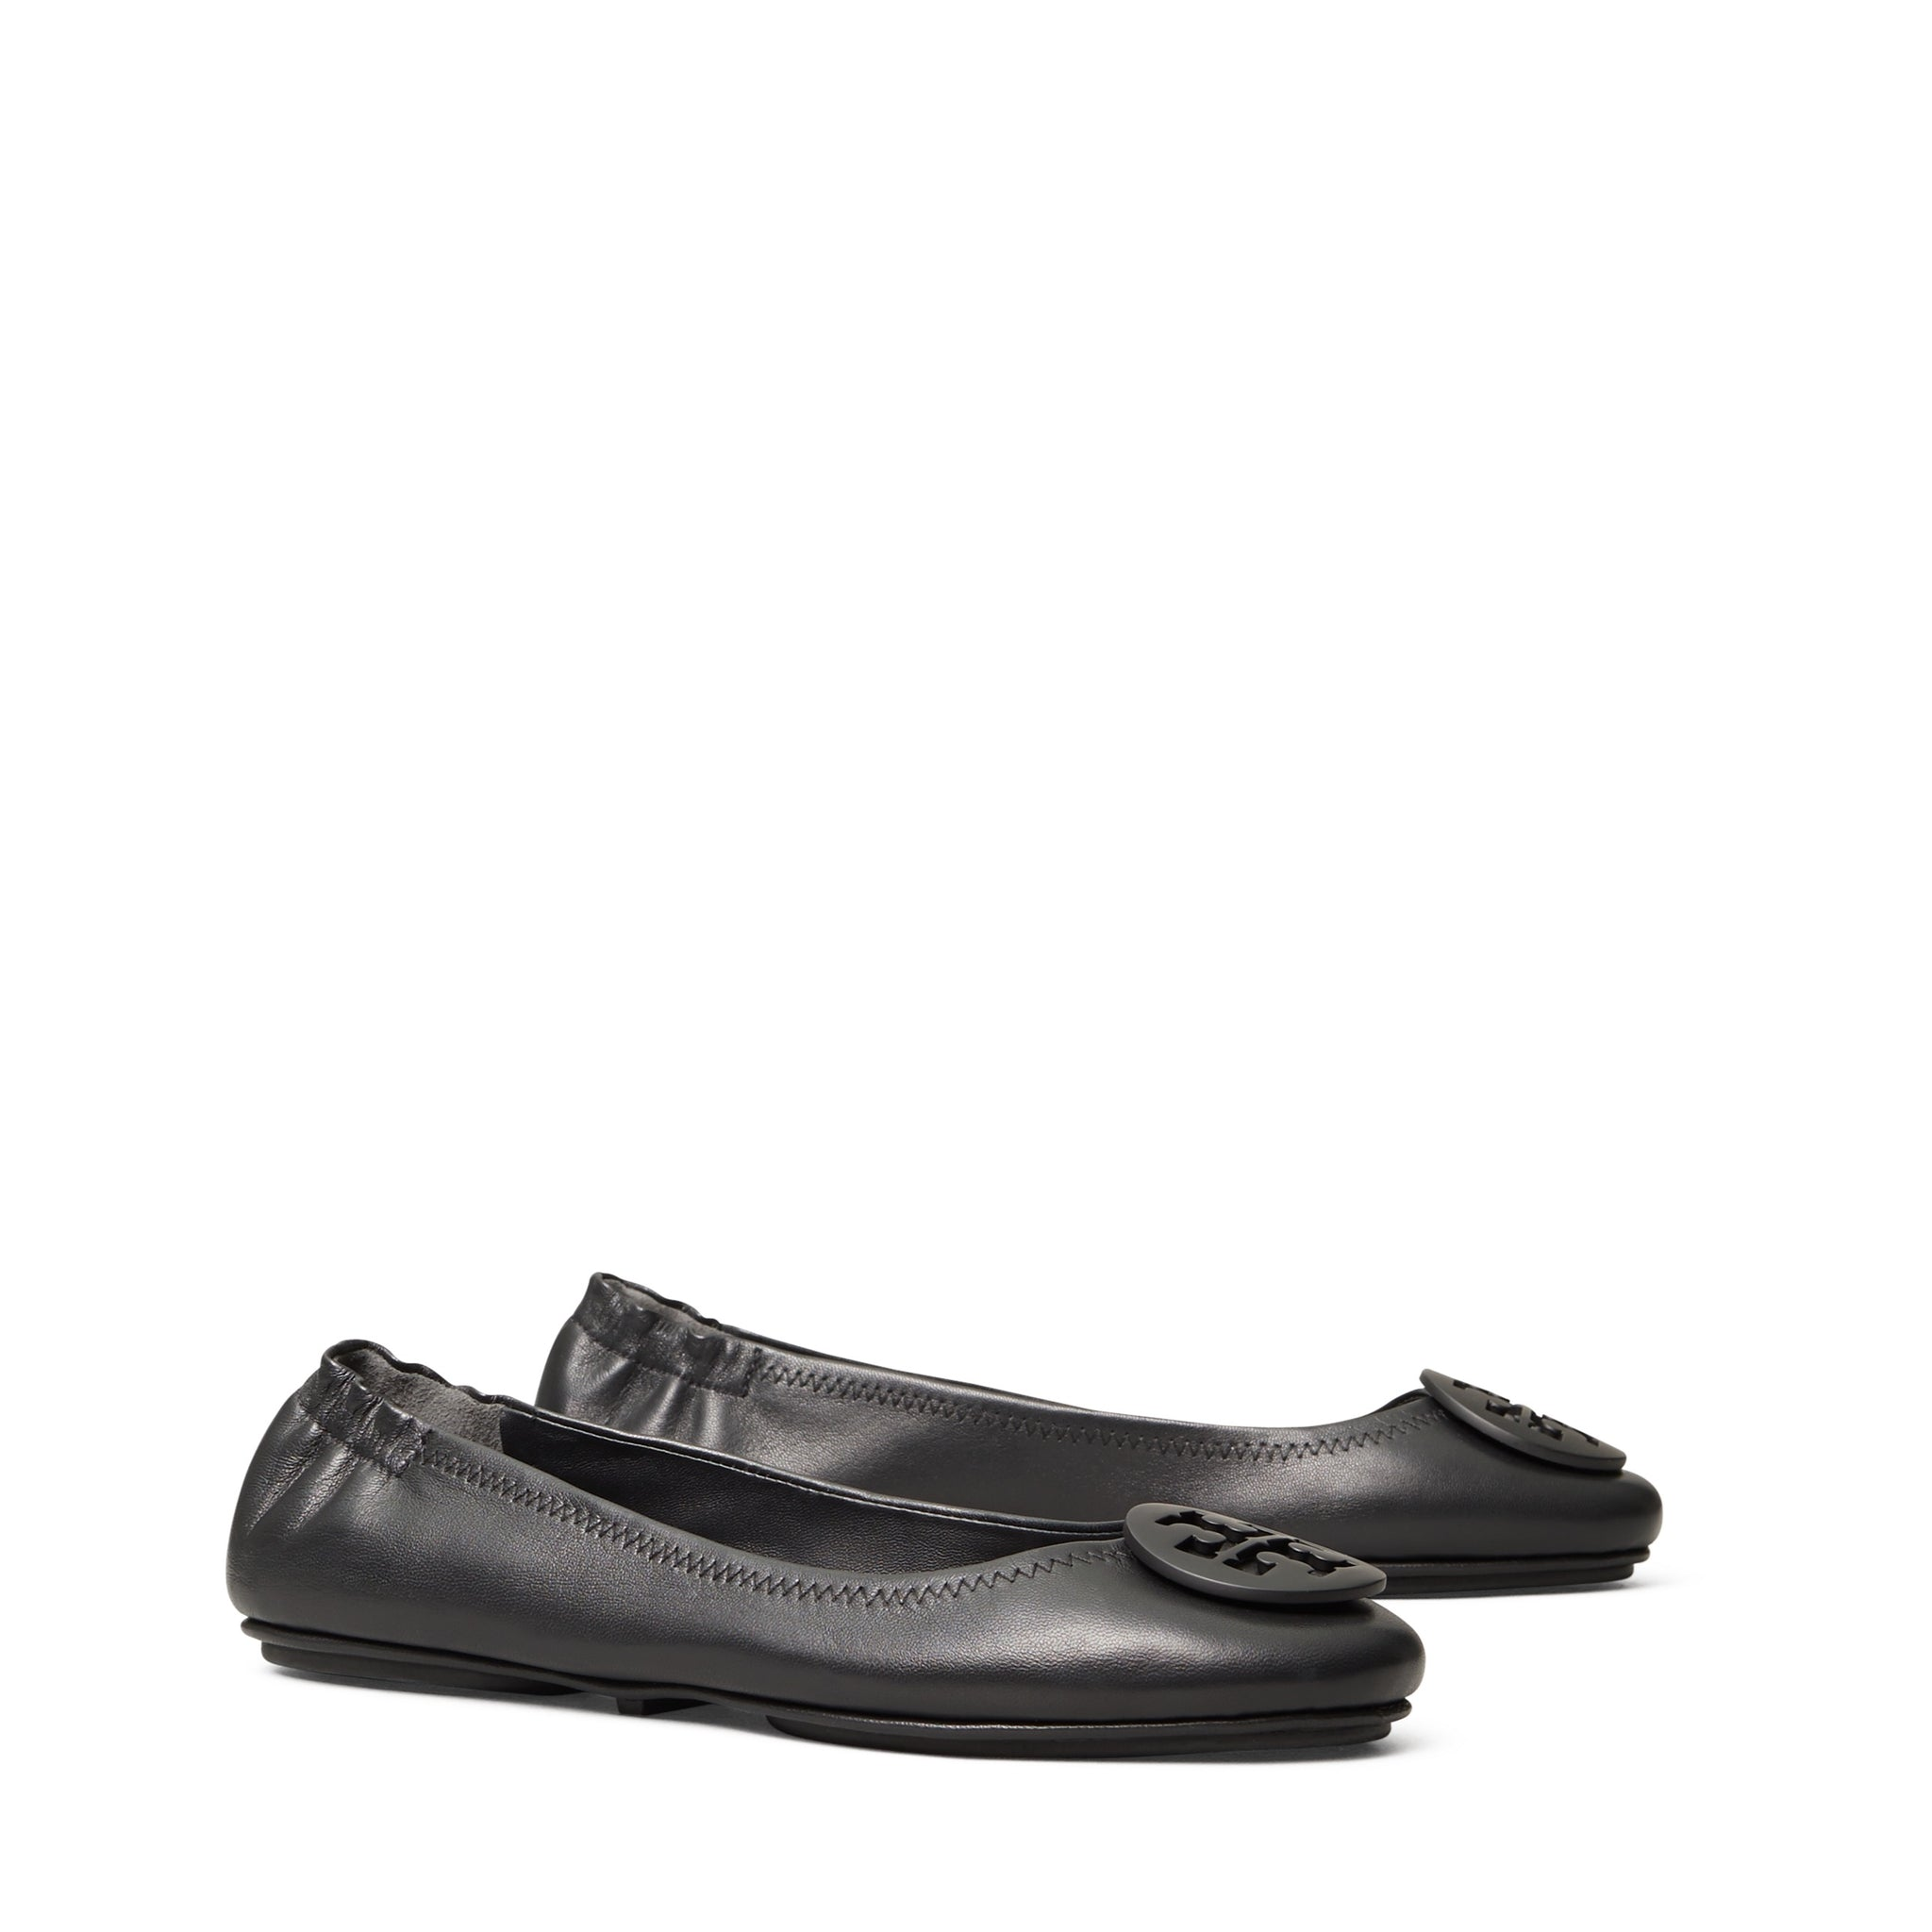 MINNIE TRAVEL BALLET FLAT LEATHER - PERFECT BLACK